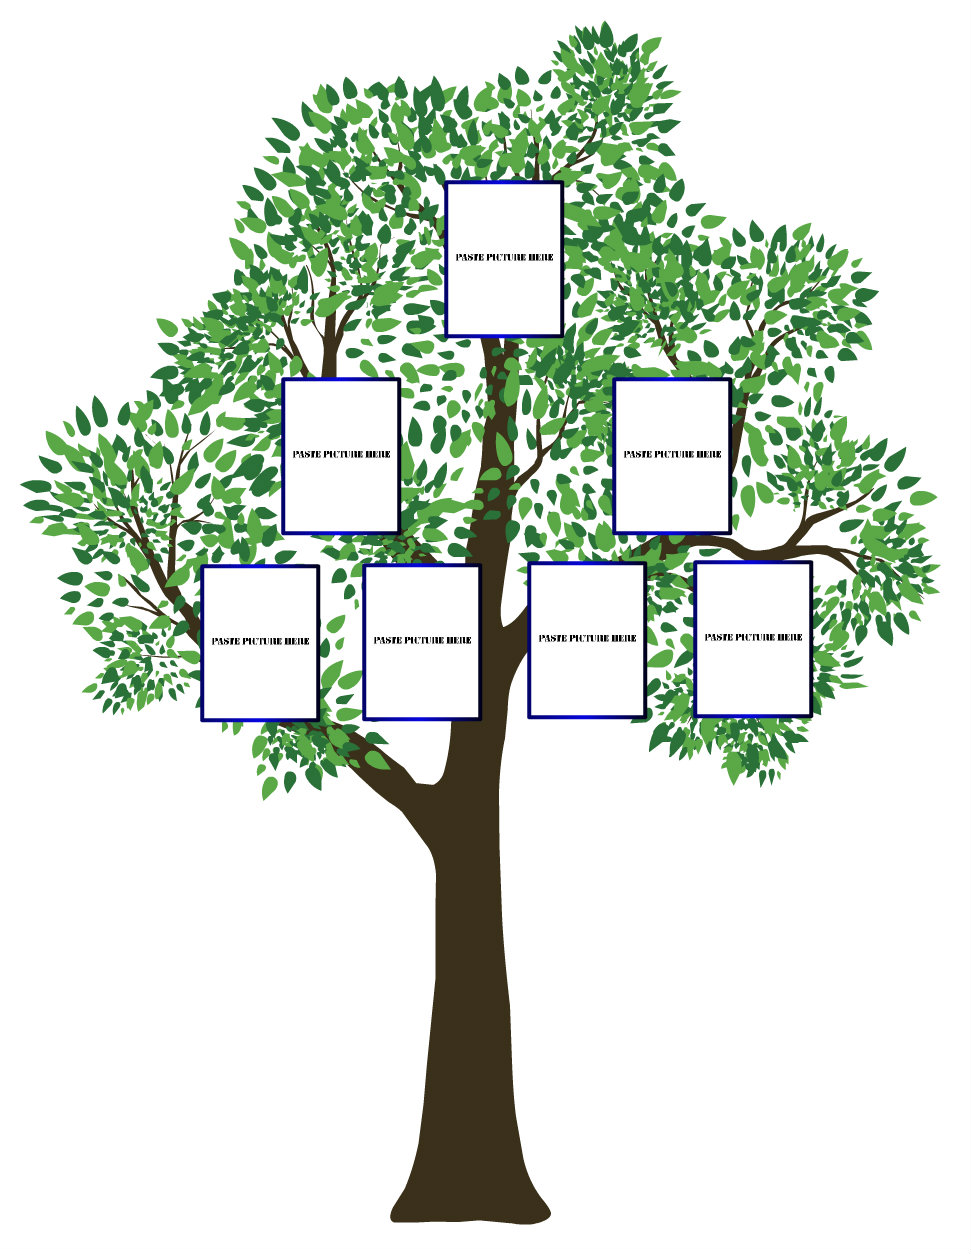 Three Generation Family Tree Templates images.